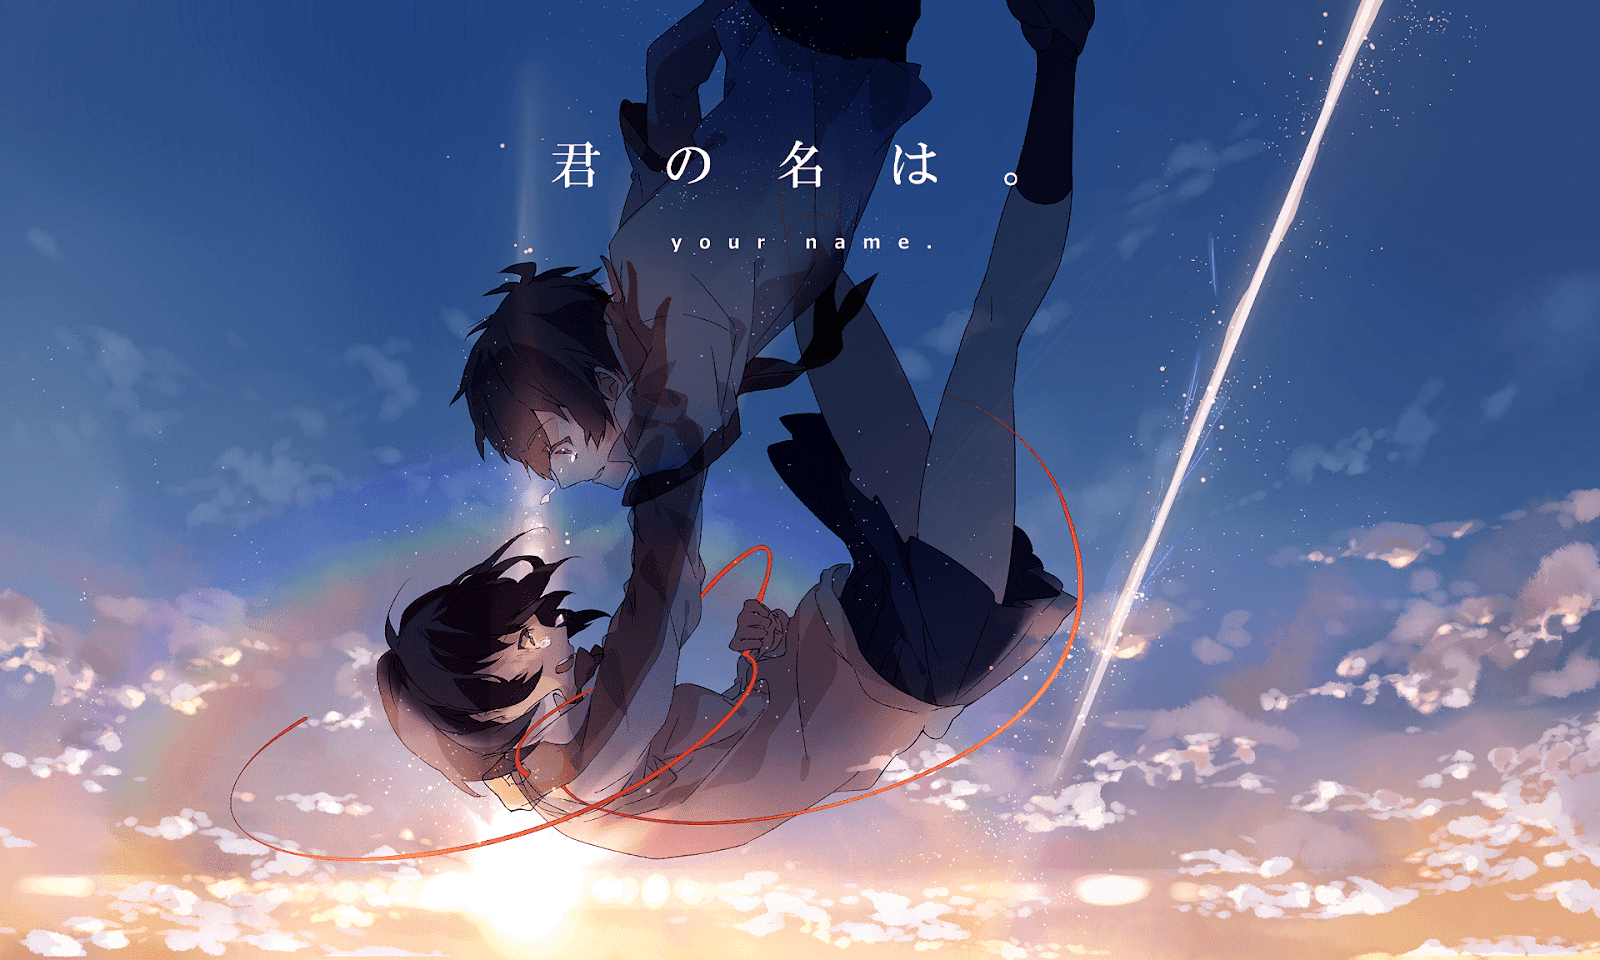 AowVN%2B%25283%2529 - [ Hình Nền ] Anime Your Name. - Kimi no Nawa full HD cực đẹp | Anime Wallpaper